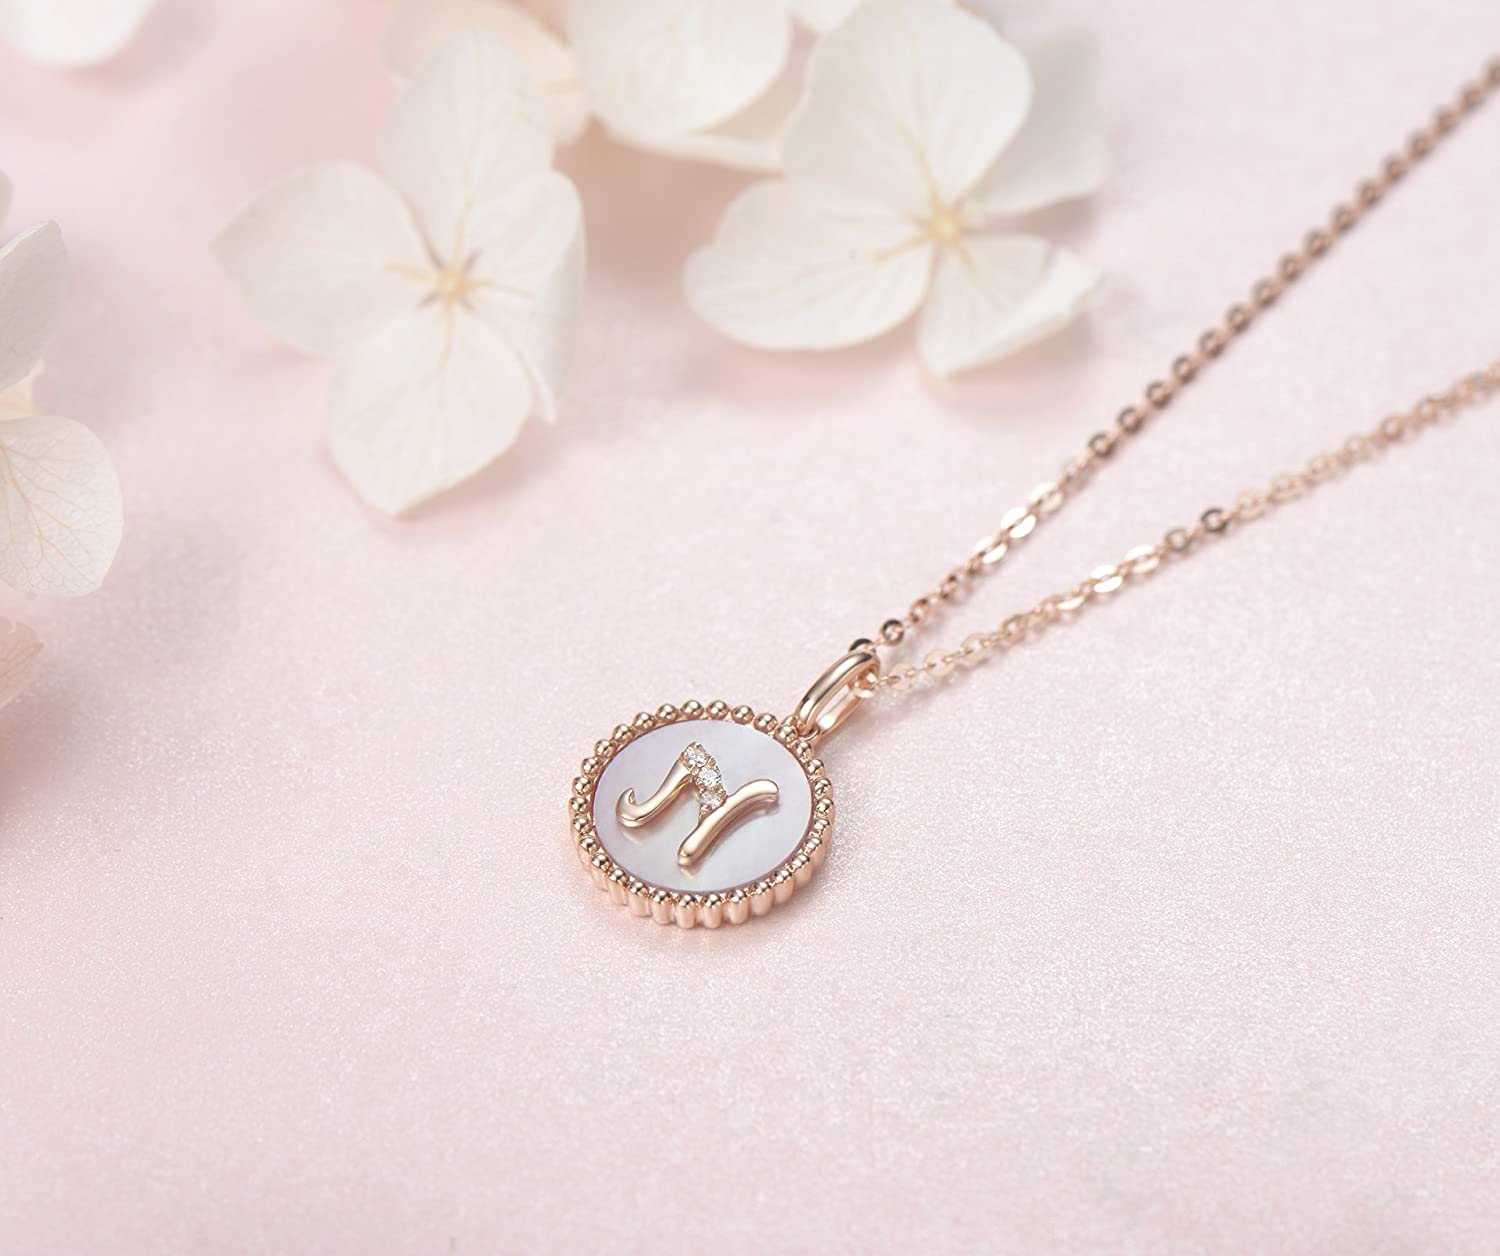 Carleen Alphabet Coin Pendant Neckace with Mother of Pearl Round Diamond for Women Girls 6982 Solid 14K Rose Gold Initial Dainty Pendant Necklace 18 Solid 14K Rose Gold Chain 18 Solid 14K Rose Gold Chain K